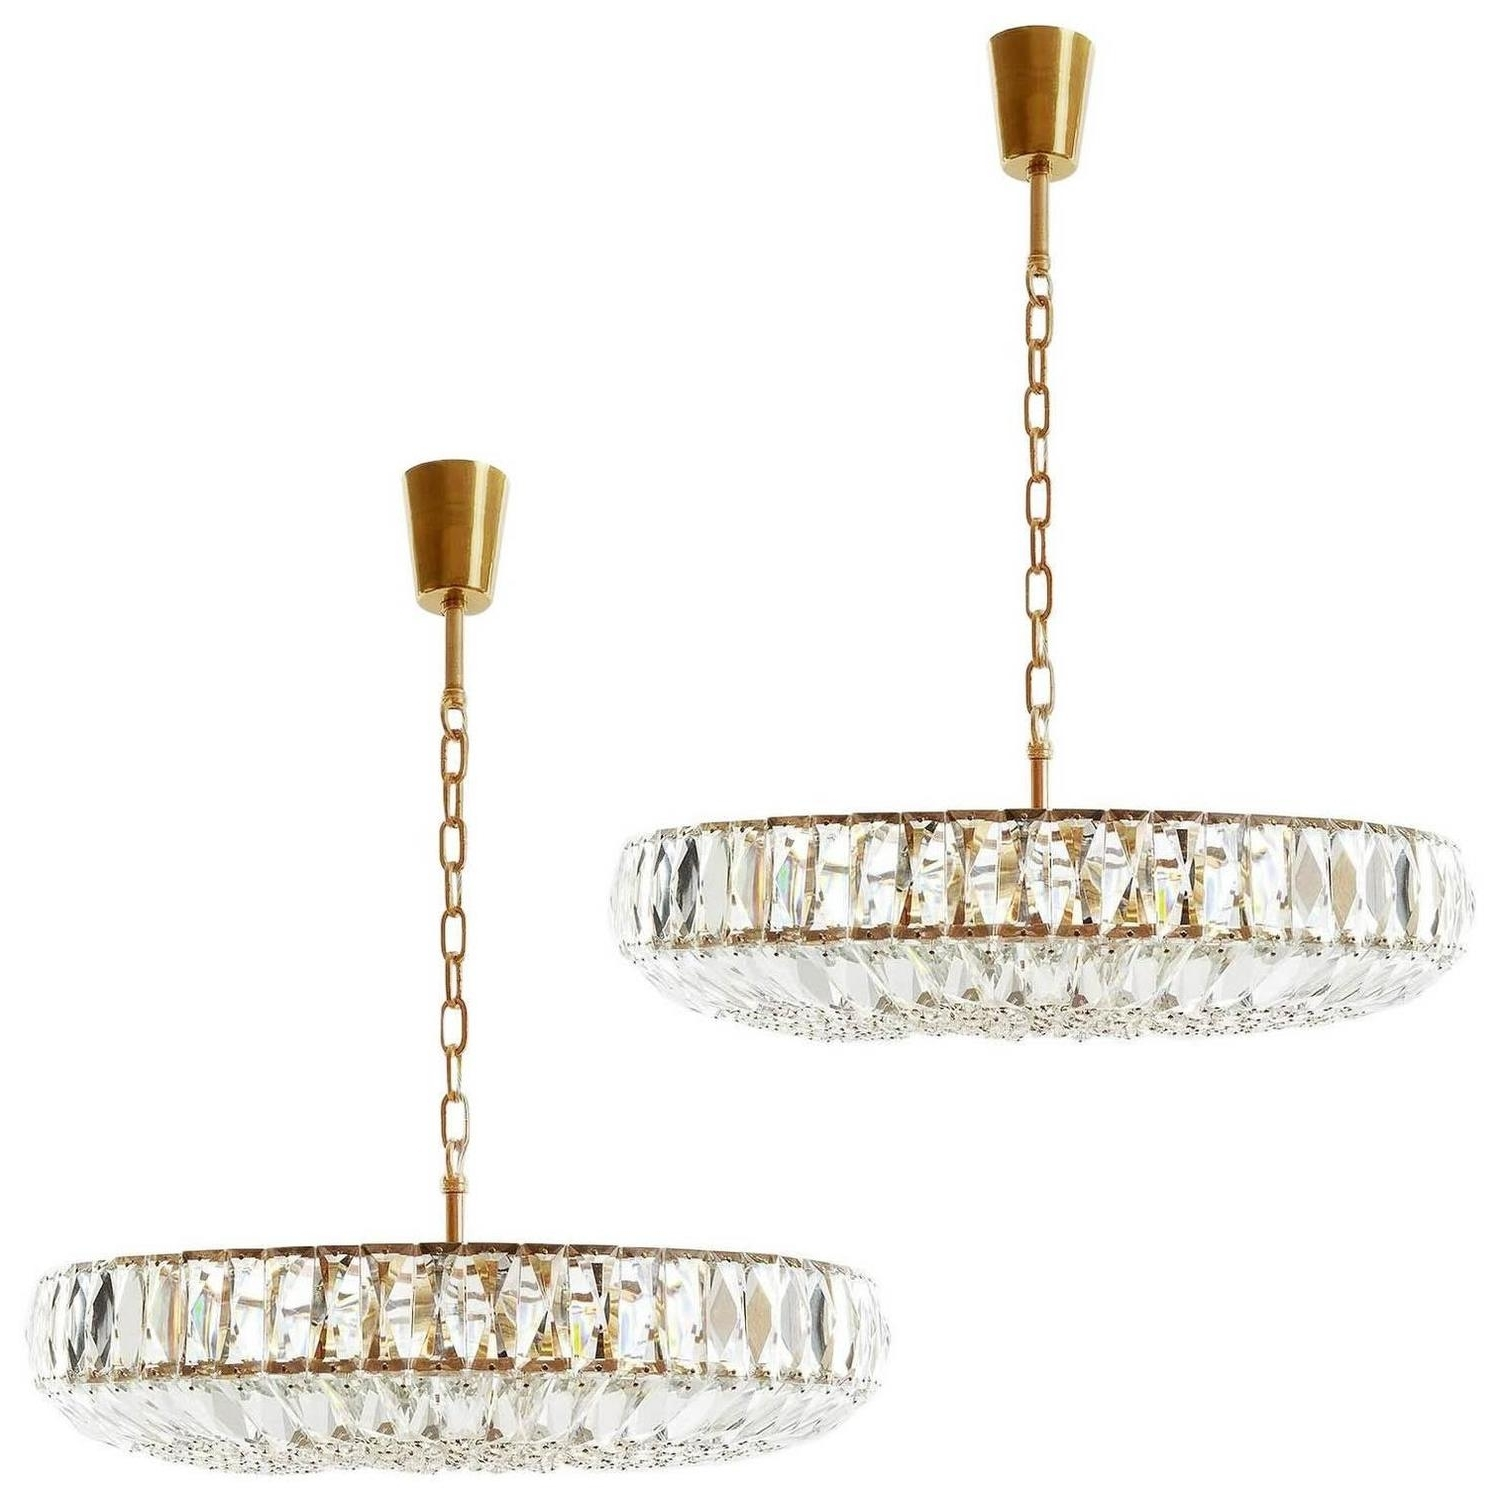 Gold Modern Chandelier With Regard To Most Up To Date Pair Of Bakalowits Style Chandeliers, Gold Brass Crystal, Austria (View 16 of 20)